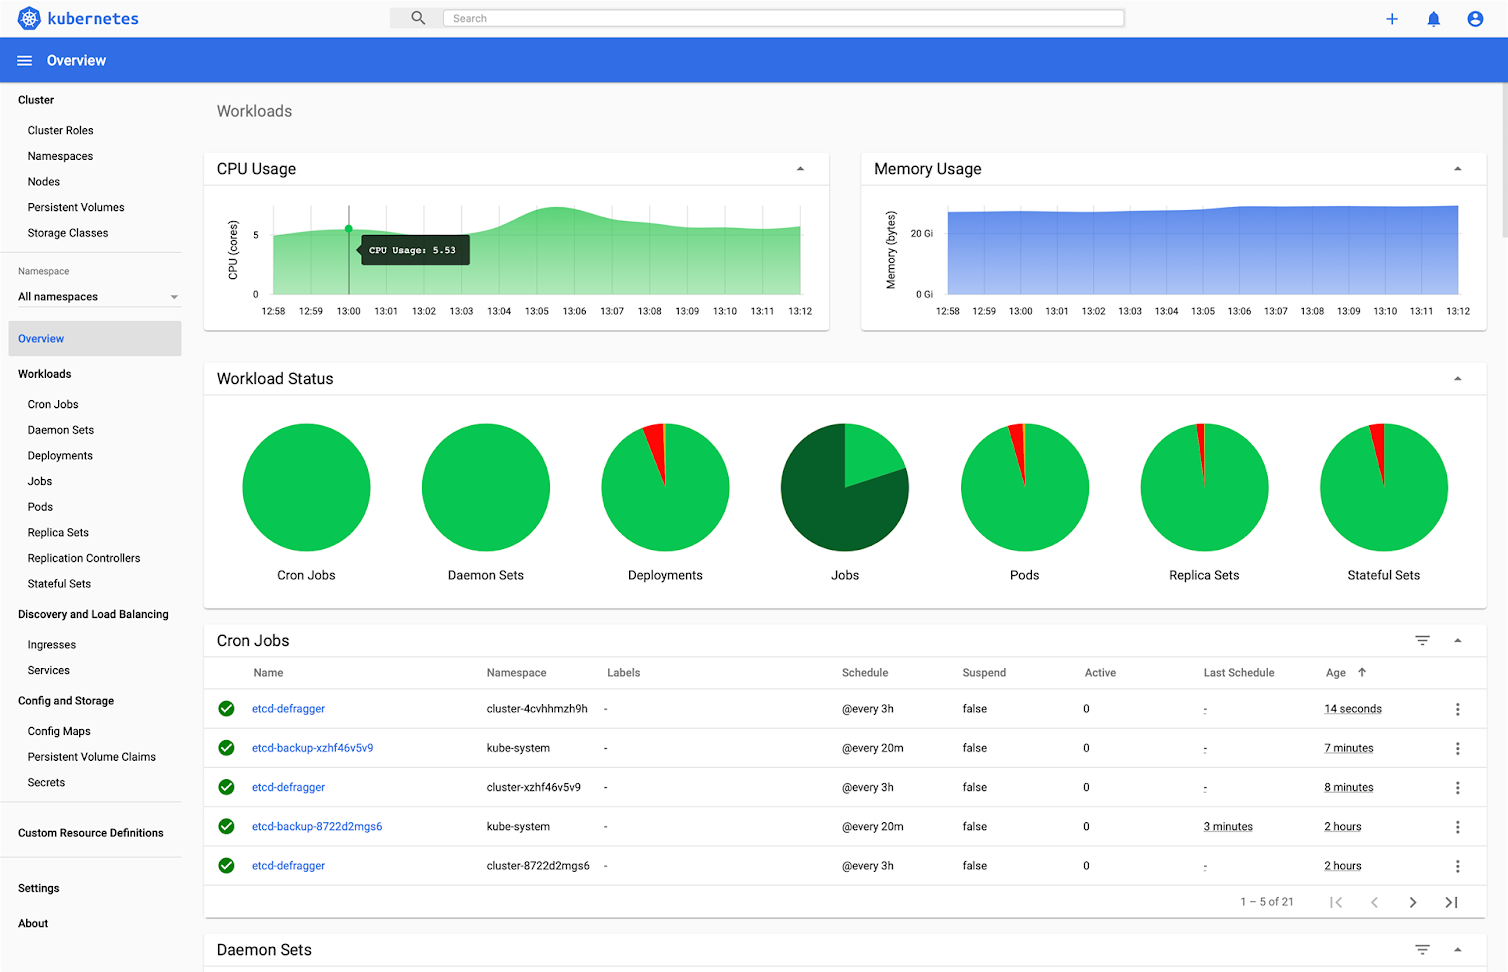 The open source Kubernetes Dashboard offers a kube-centric view of basic pod, replica set, and deployment data